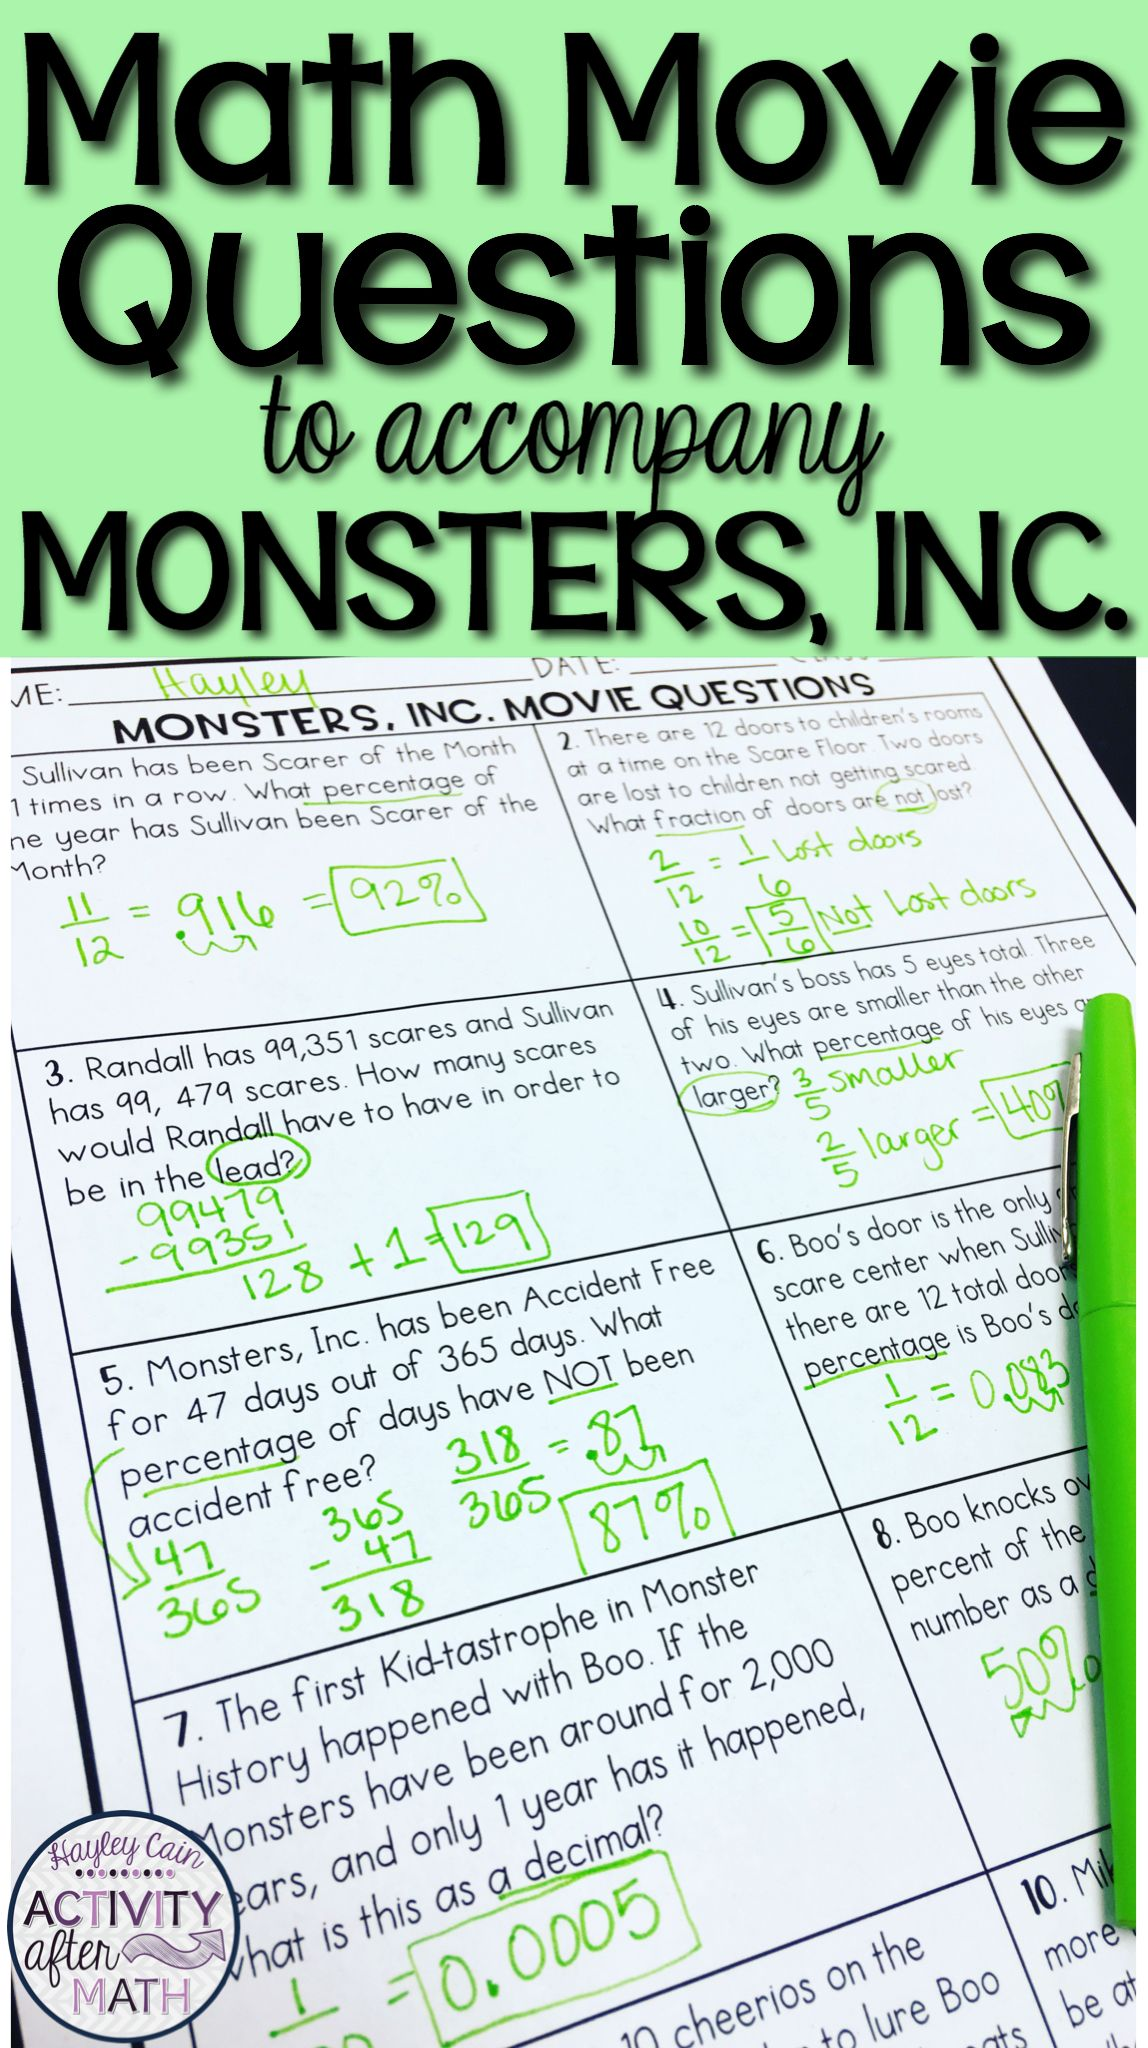 Math Movie Questions To Accompany The Movie Monsters Inc